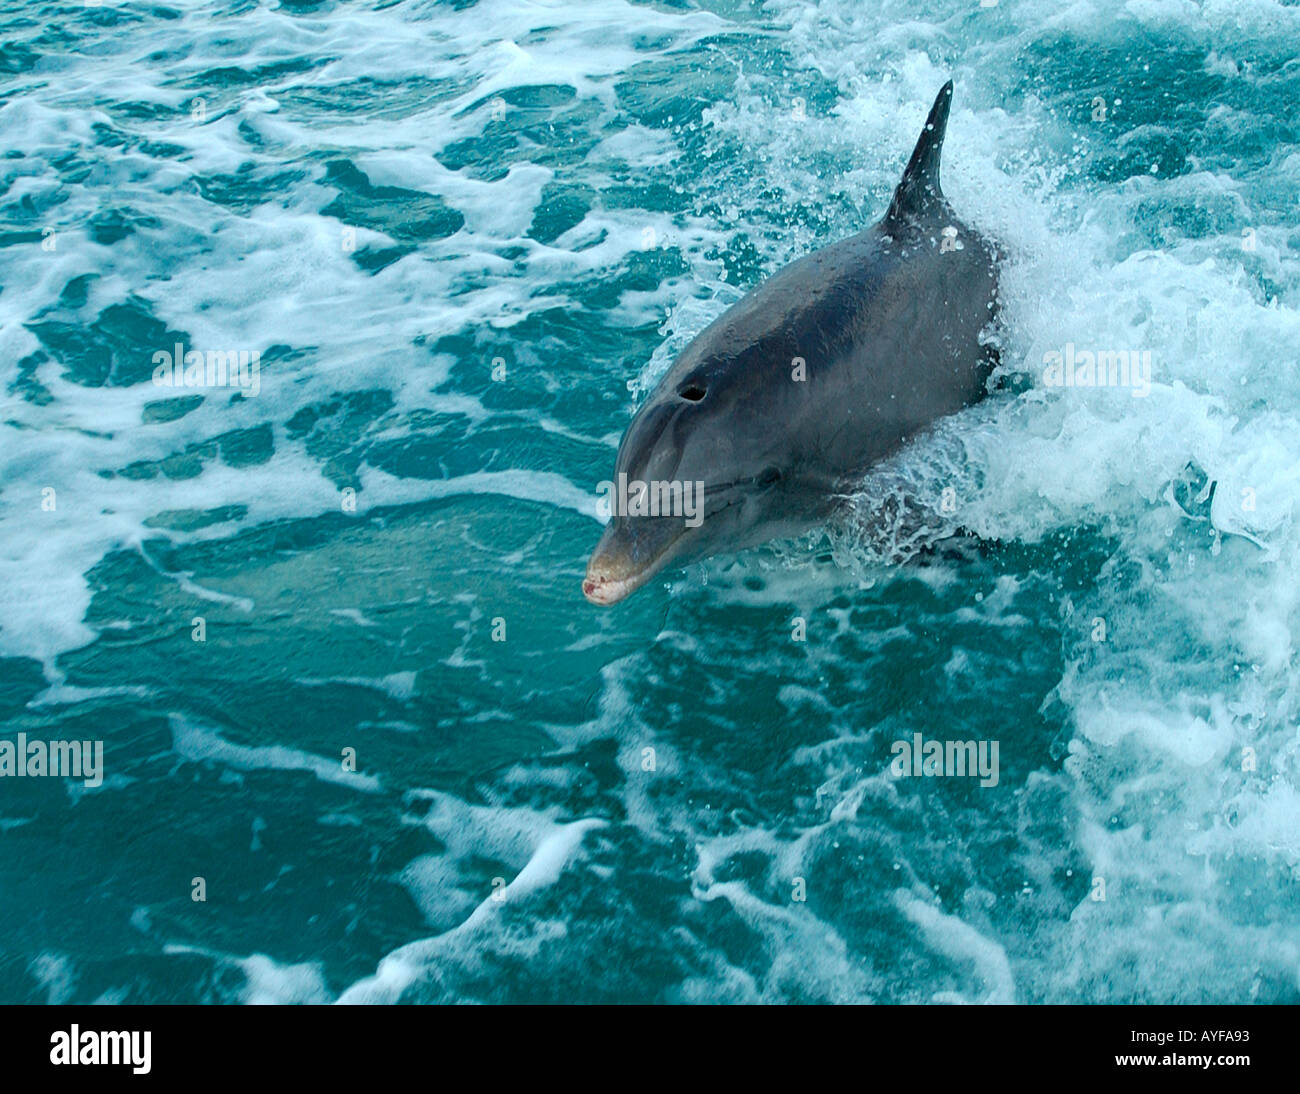 JoJo the friendly Bottlenose Dolphin jumping out of the ocean following a boat out of the marina in the Turks and Caicos Islands - Stock Image